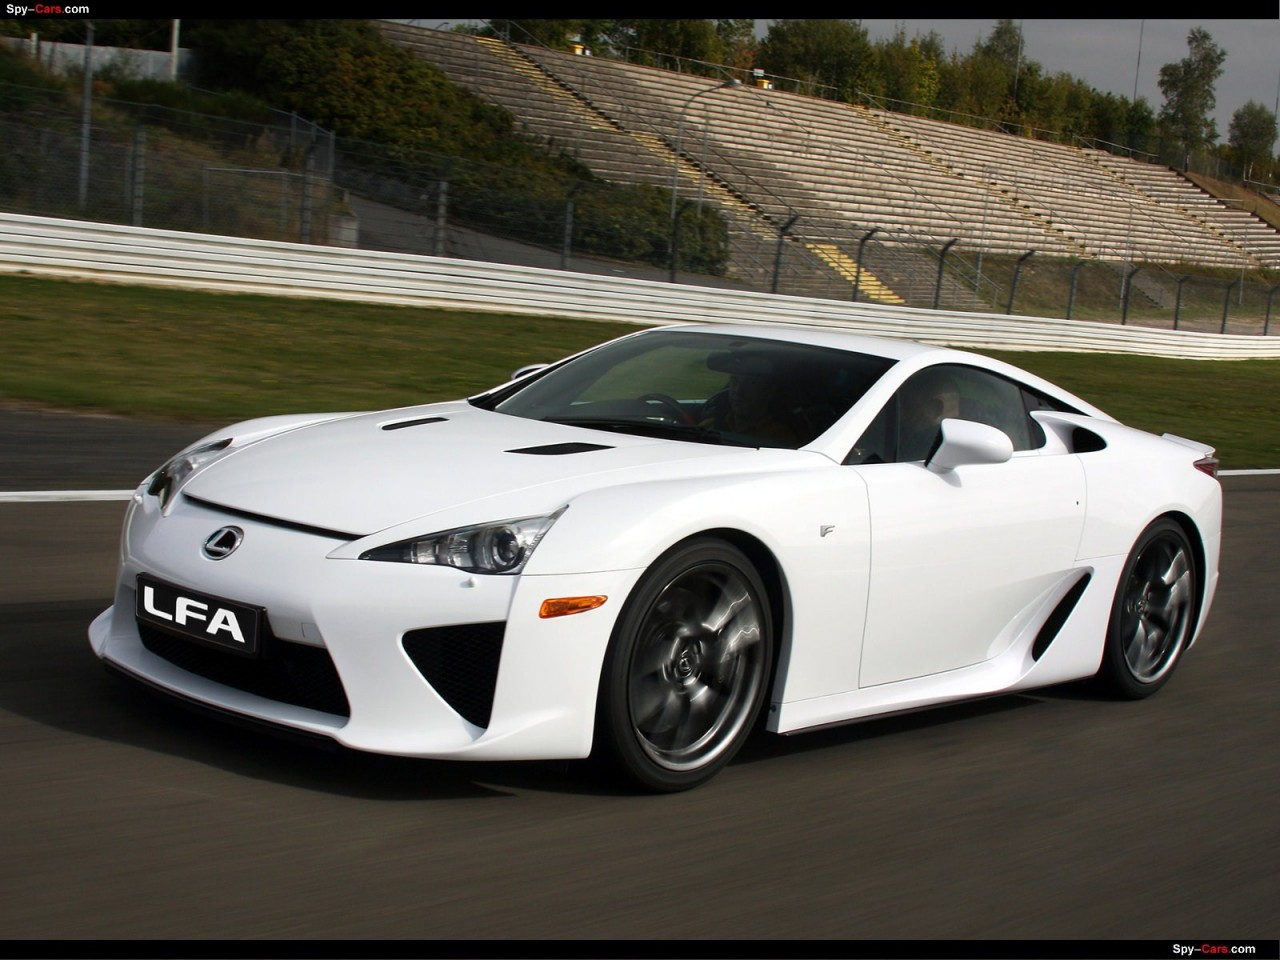 2011 lexus lfa. Black Bedroom Furniture Sets. Home Design Ideas